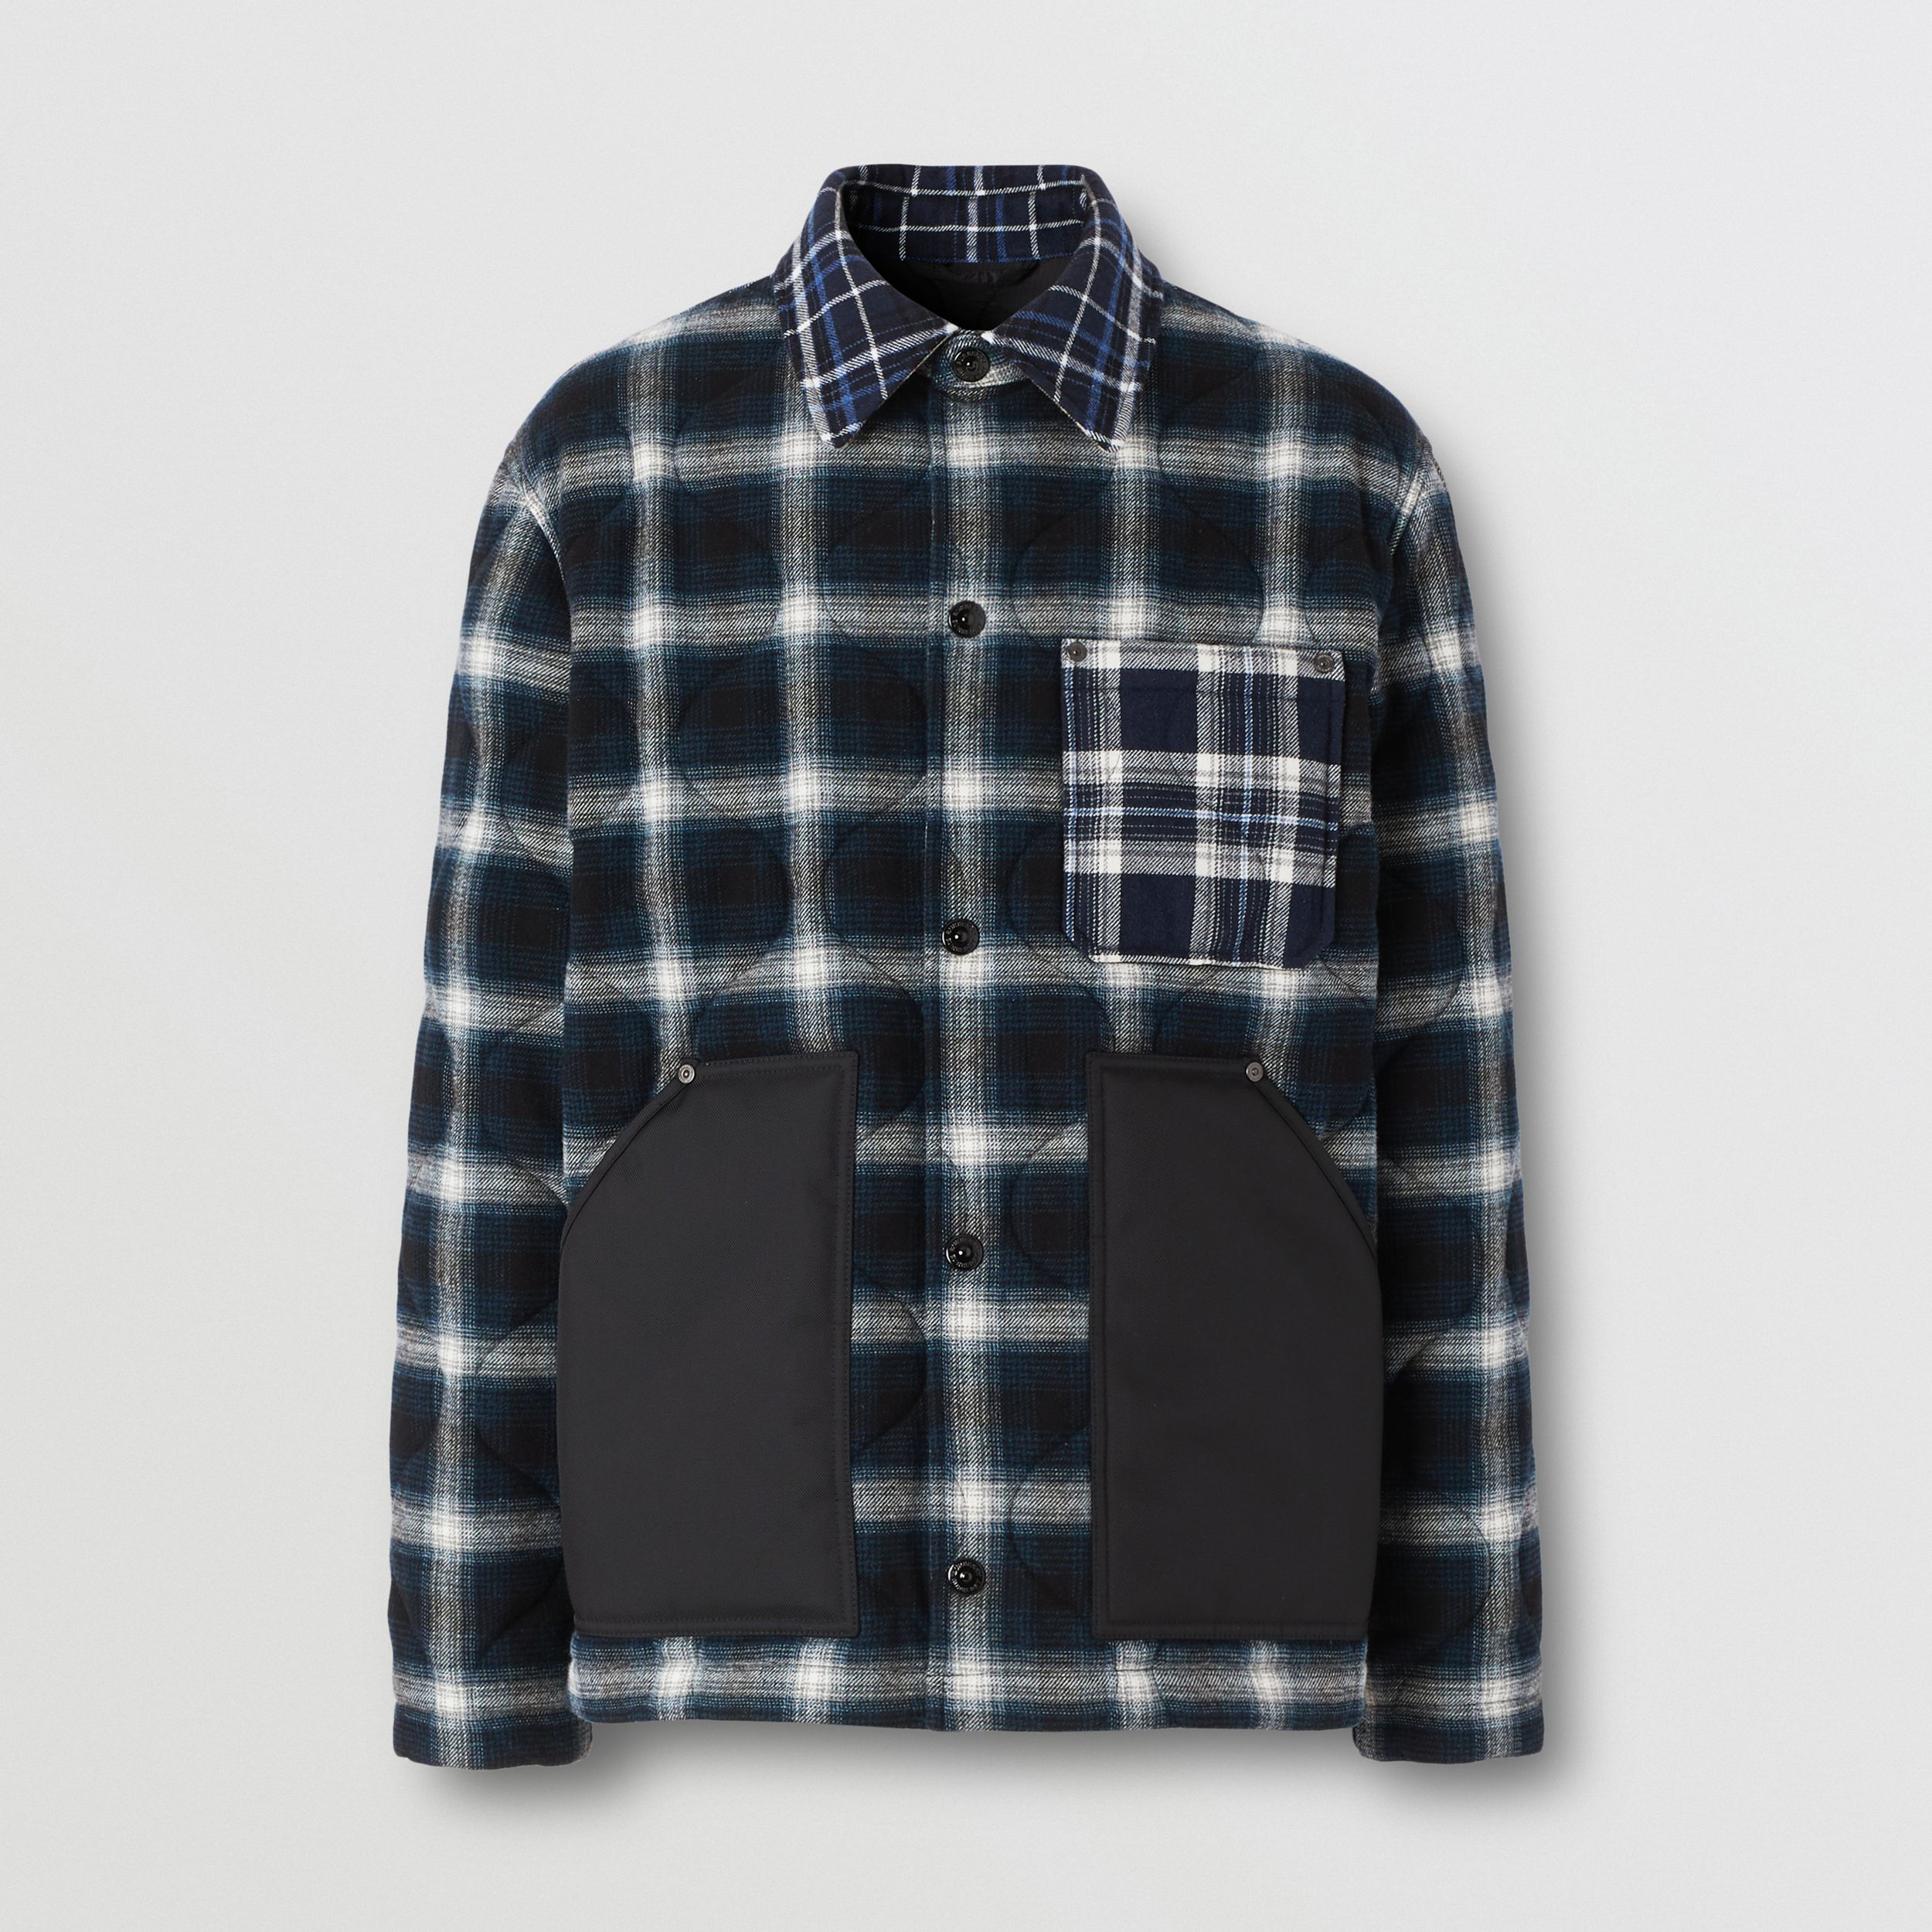 Contrast Pocket Check Wool Cotton Overshirt in Black - Men | Burberry United States - 4